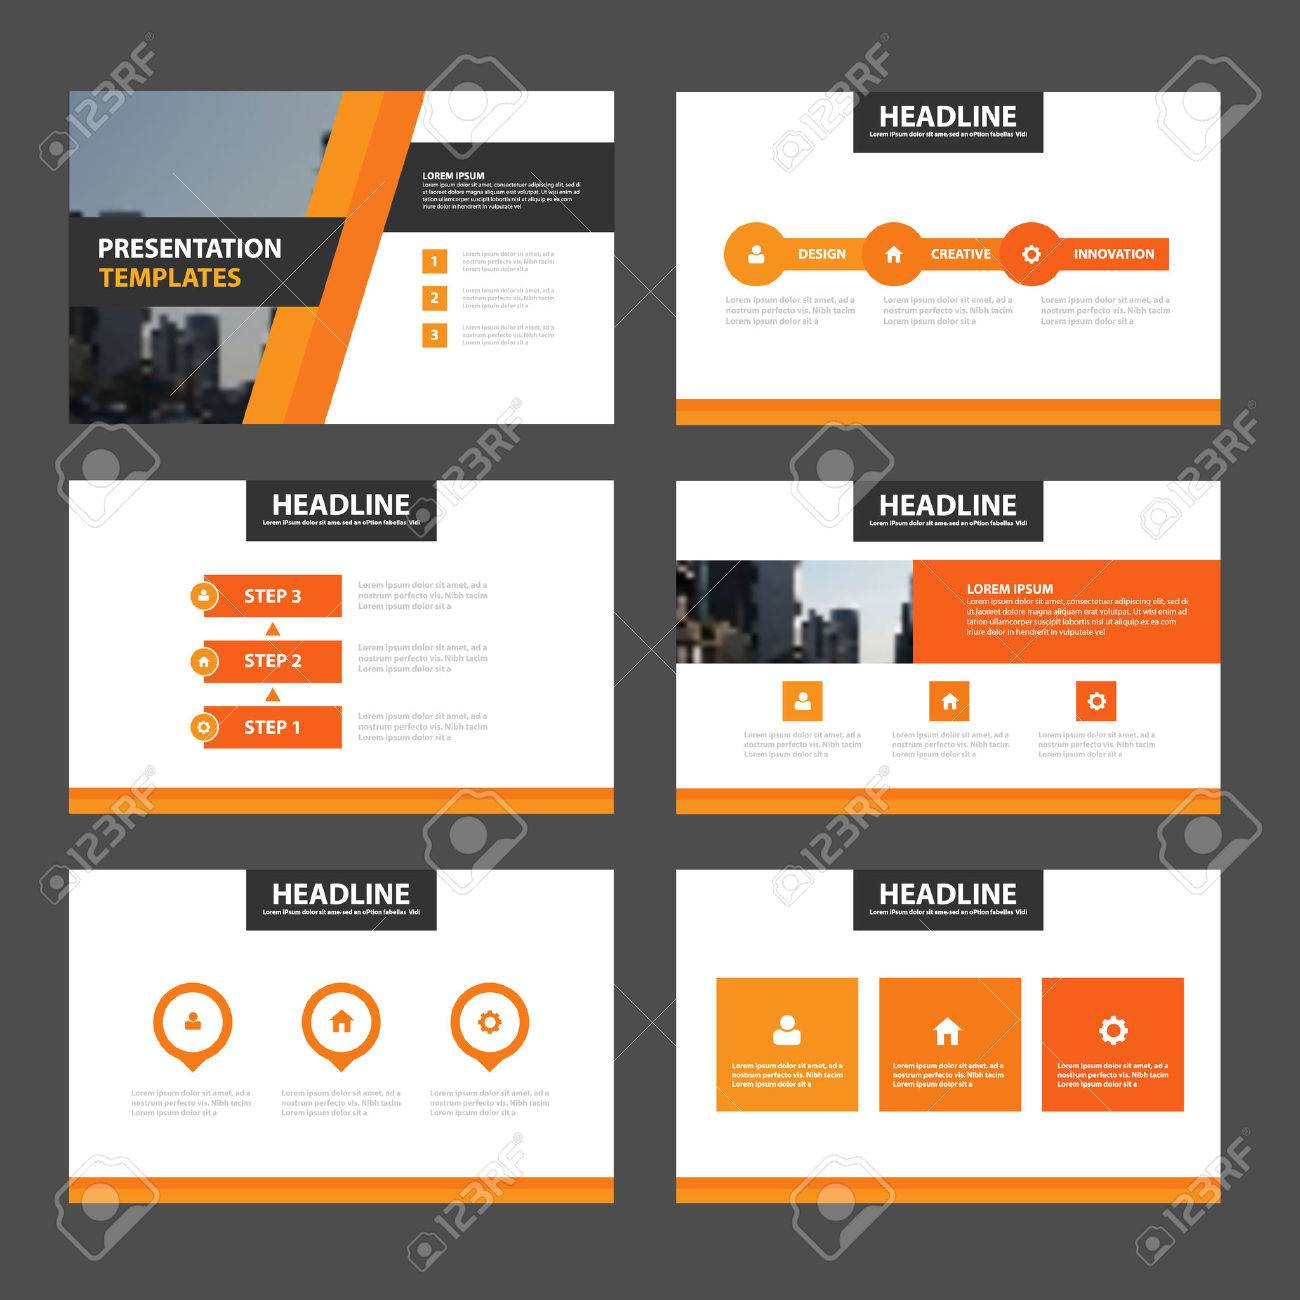 orange presentation templates infographic elements flat design, Powerpoint templates